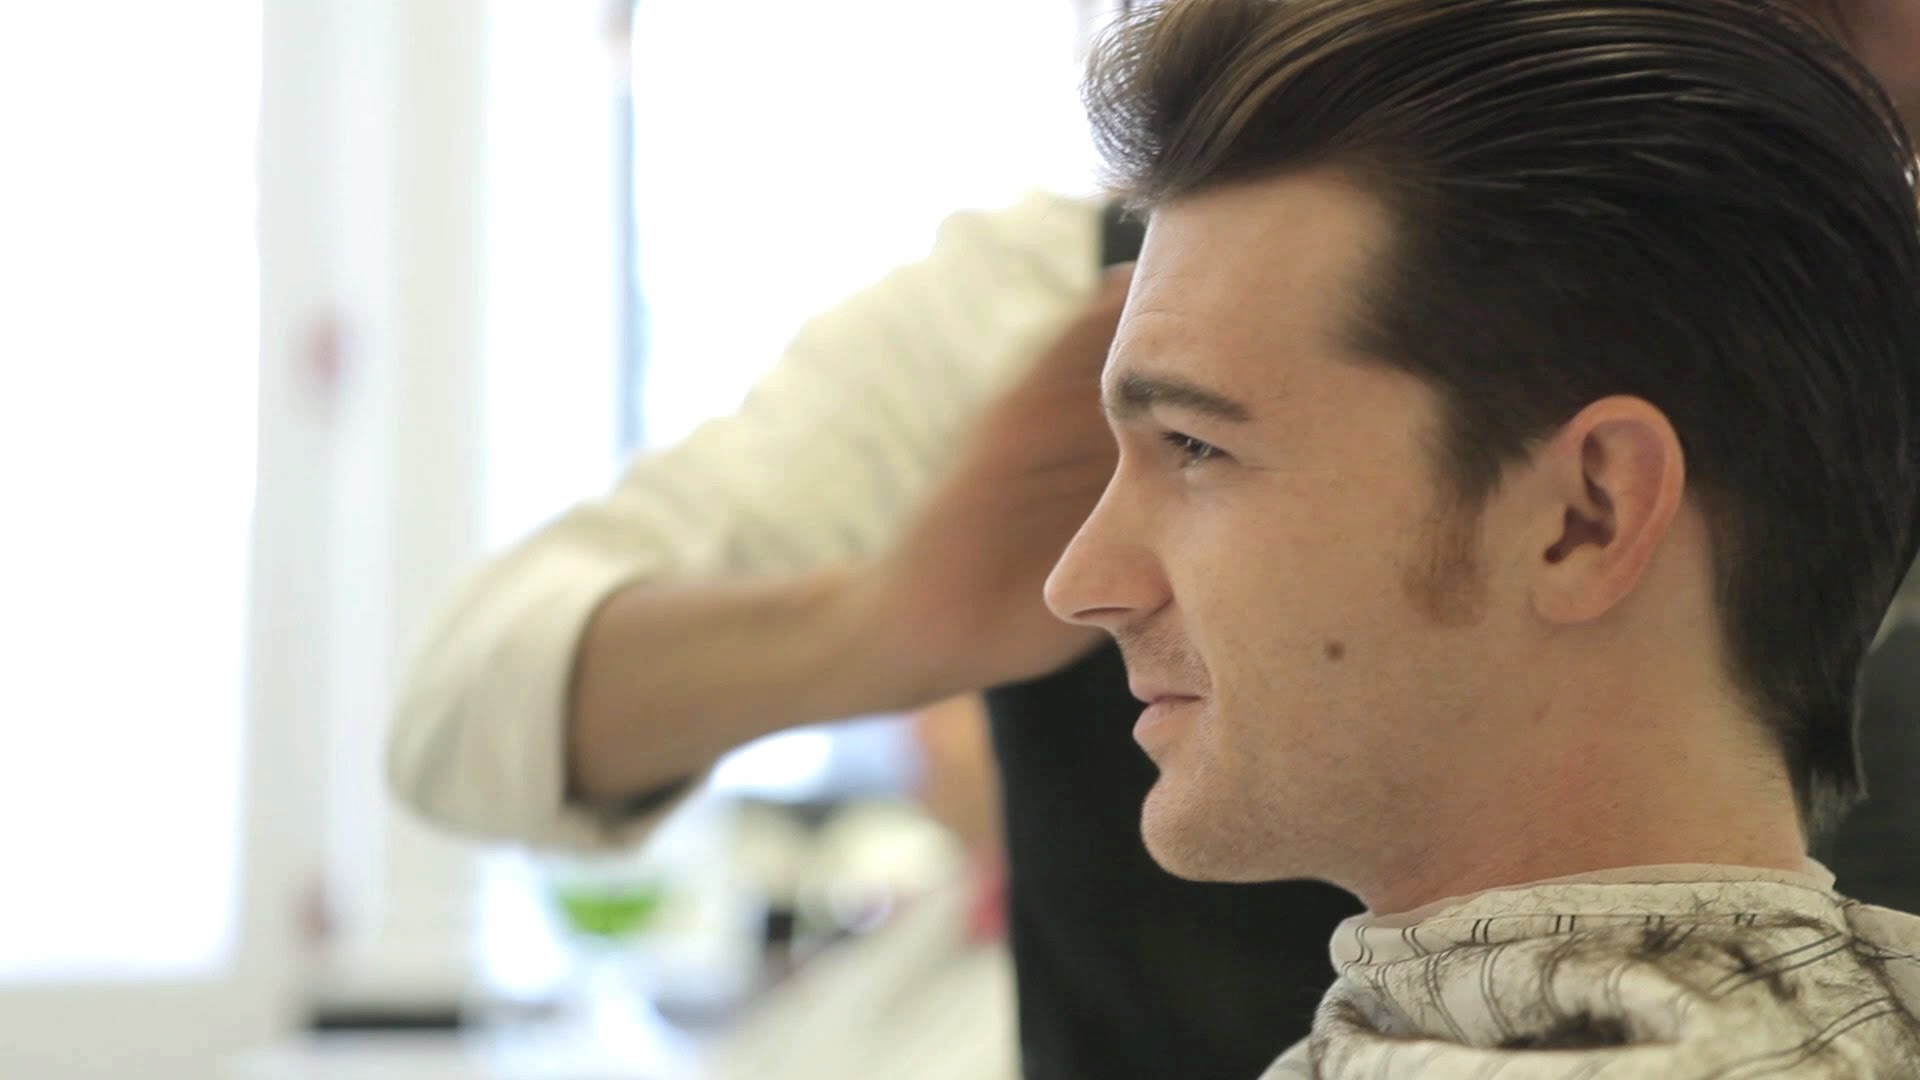 Drake Bell - A Day In The Life